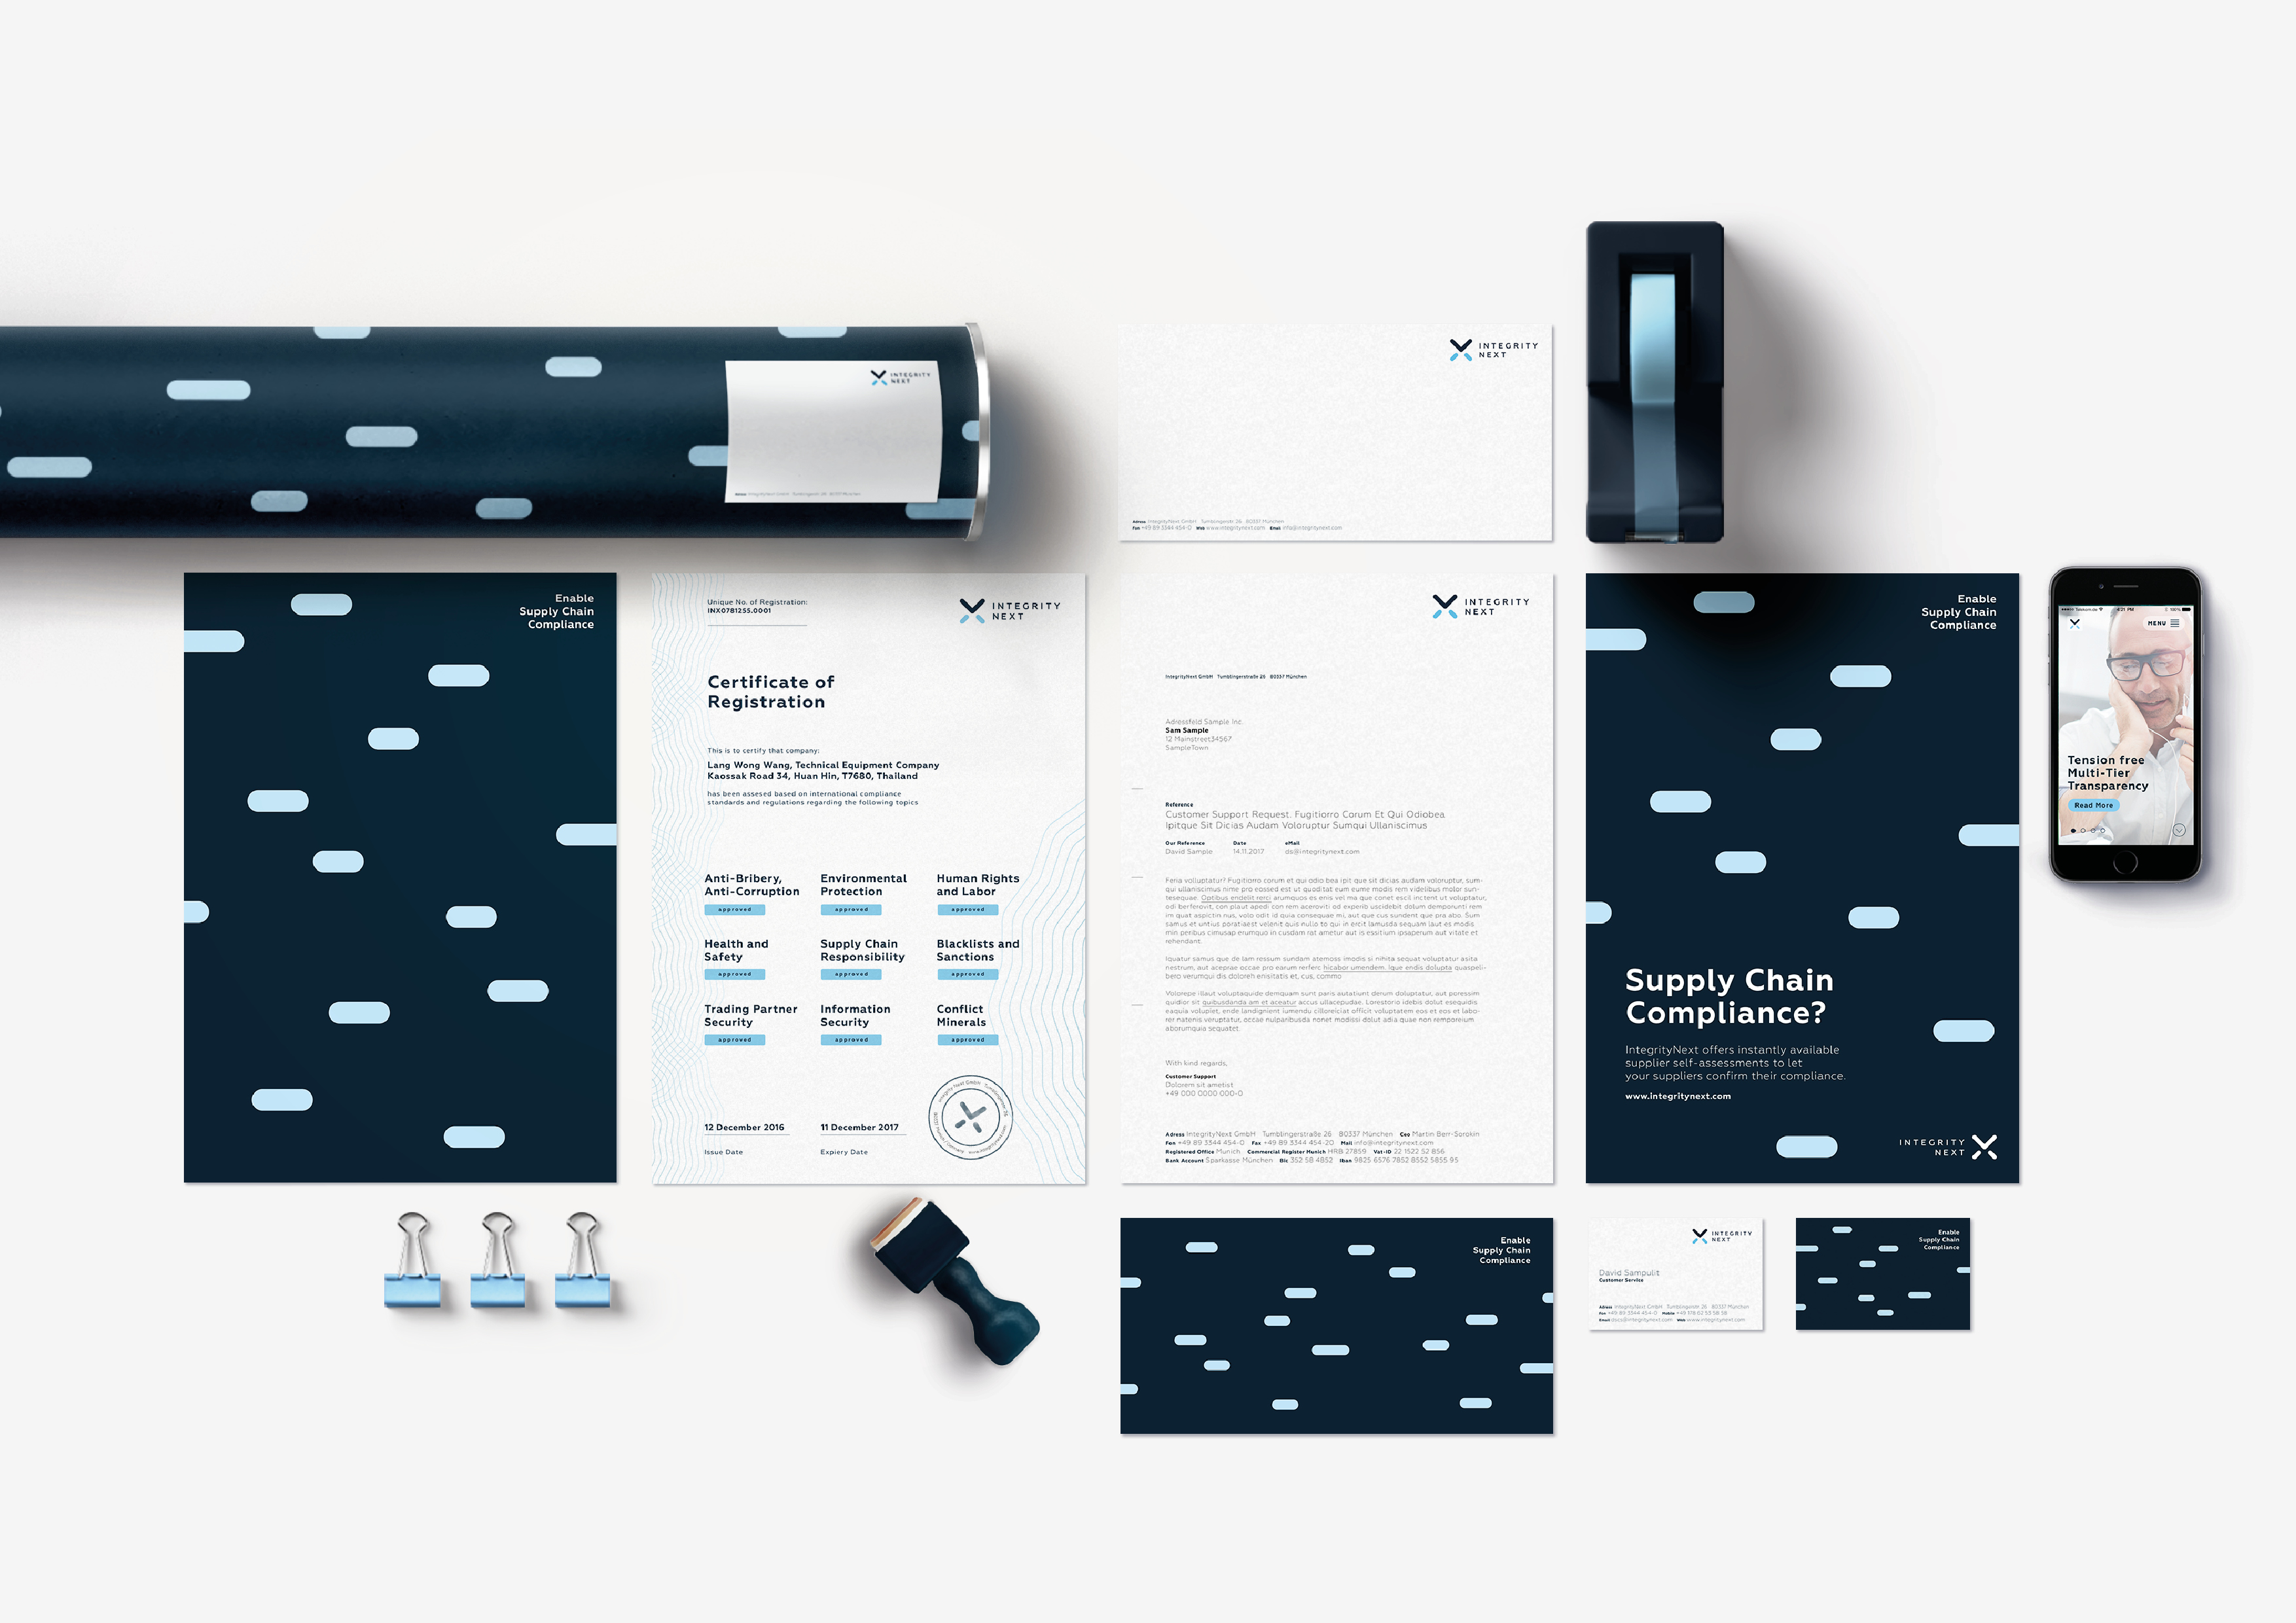 Integrated Graphic Design IntegrityNext